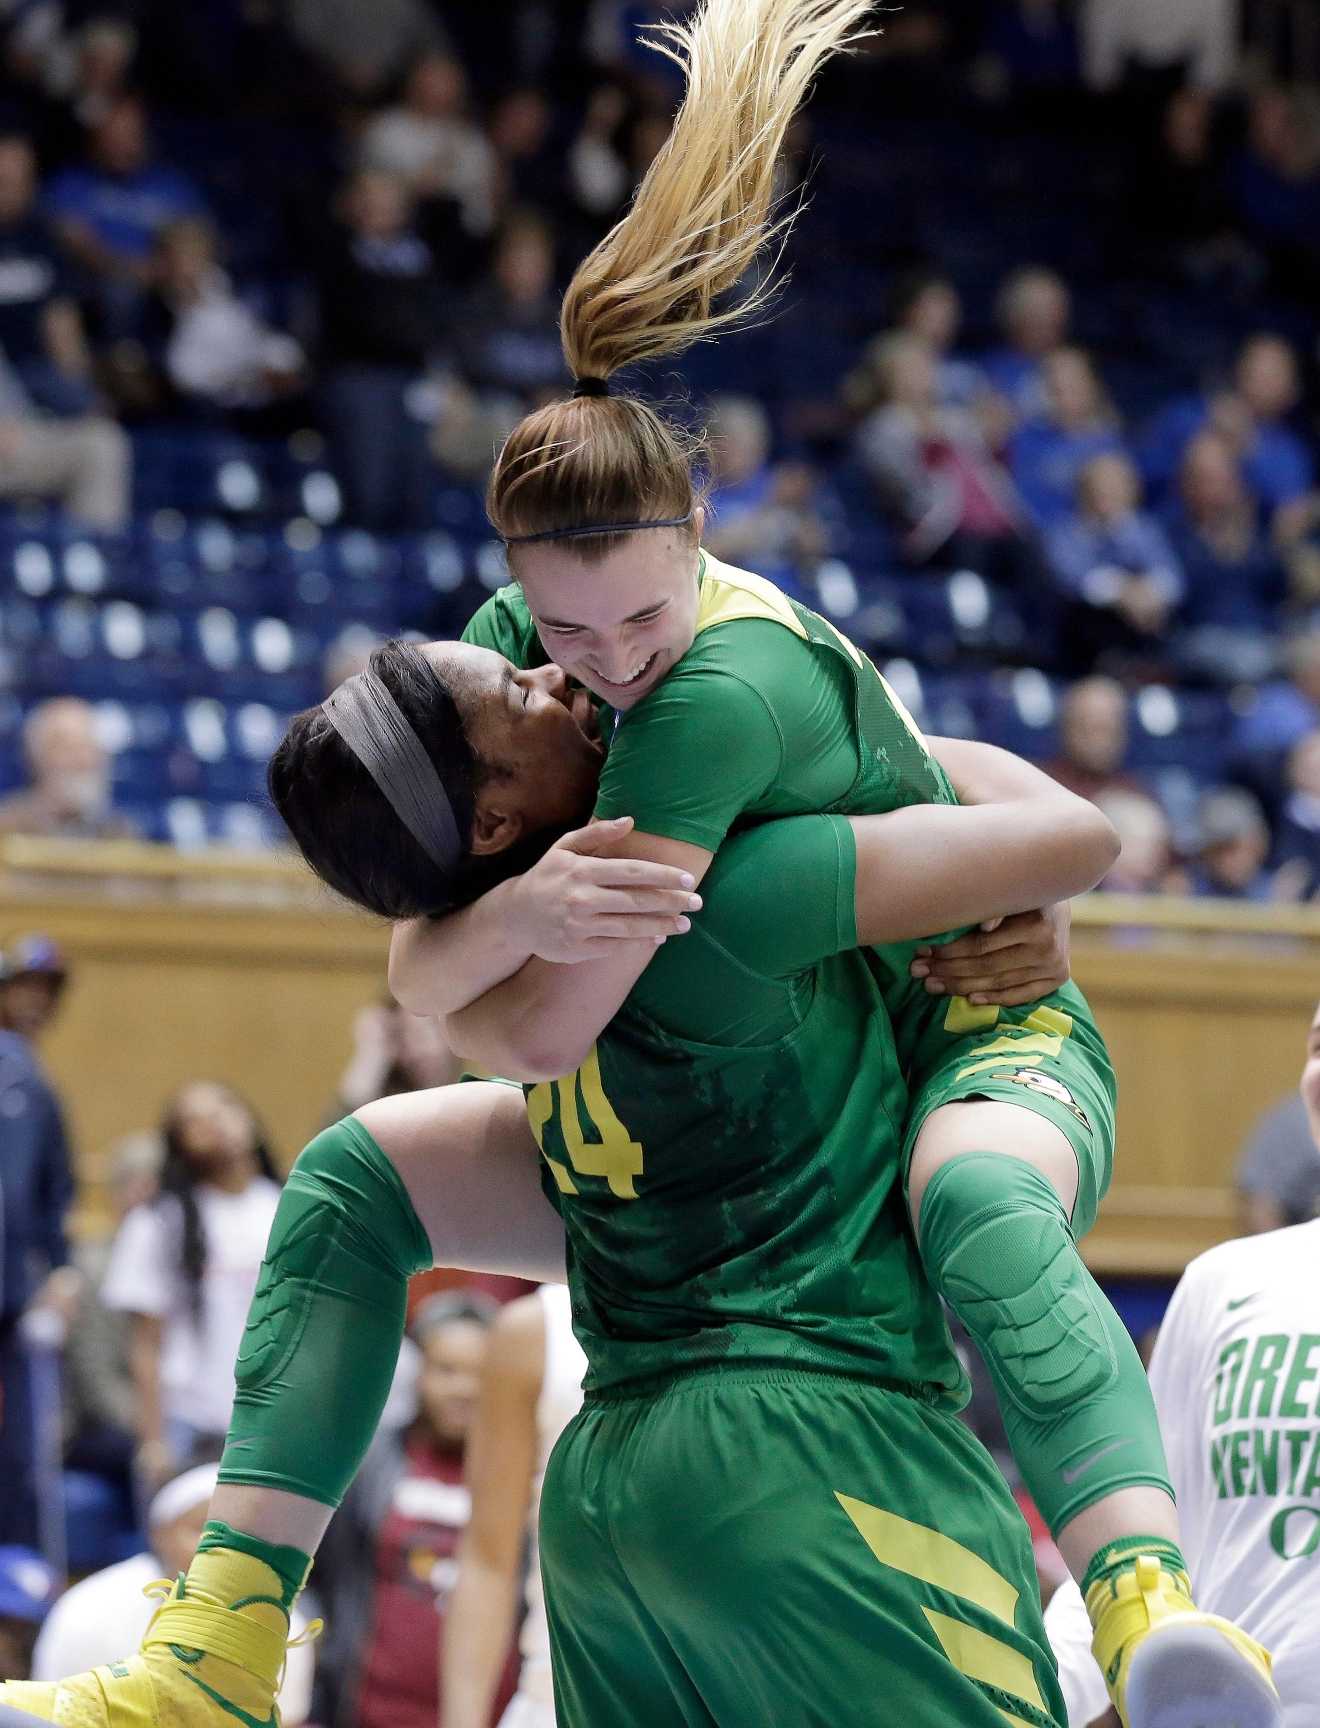 Oregon's Sabrina Ionescu jumps into the arms of Ruthy Hebard (24) following Hebard's late shot to put Oregon ahead during the second half of a first-round game in the NCAA women's college basketball tournament in Durham, N.C., Saturday, March 18, 2017. Oregon won 71-70. (AP Photo/Gerry Broome)